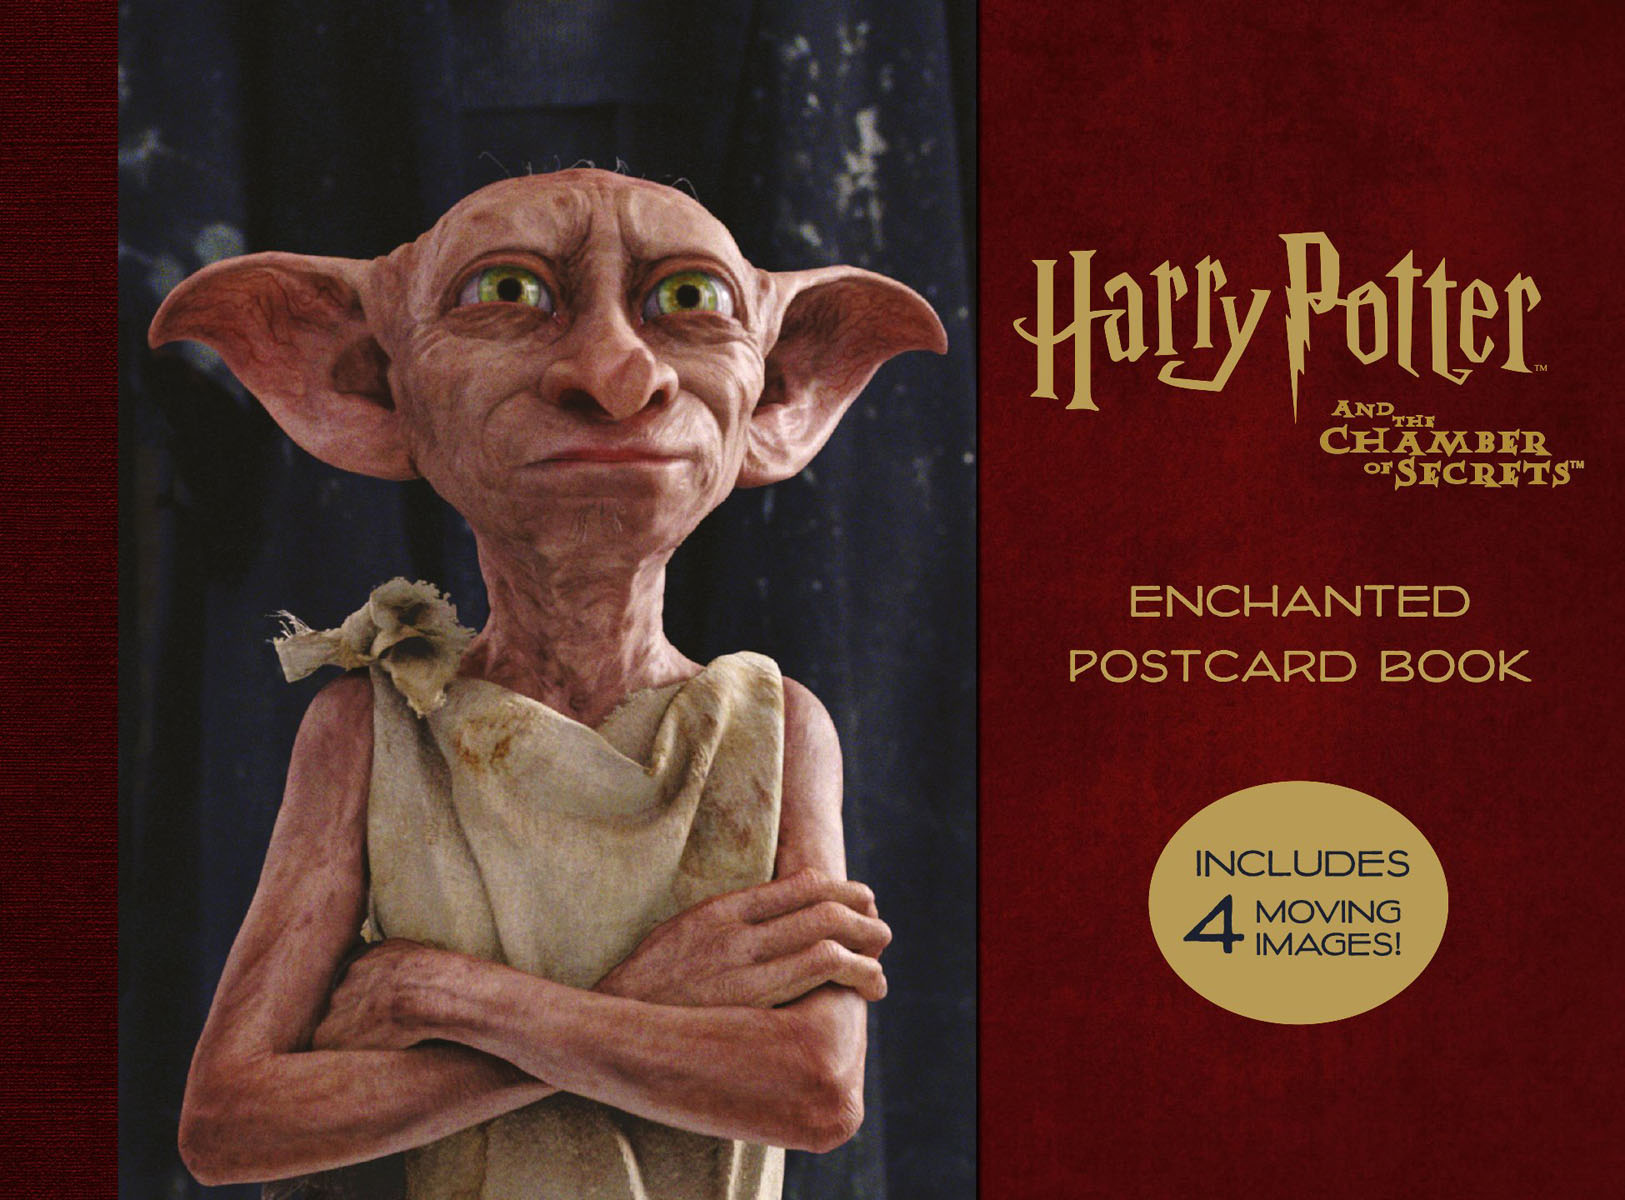 Harry Potter and the Chamber of Secrets Enchanted Postcard Book купить